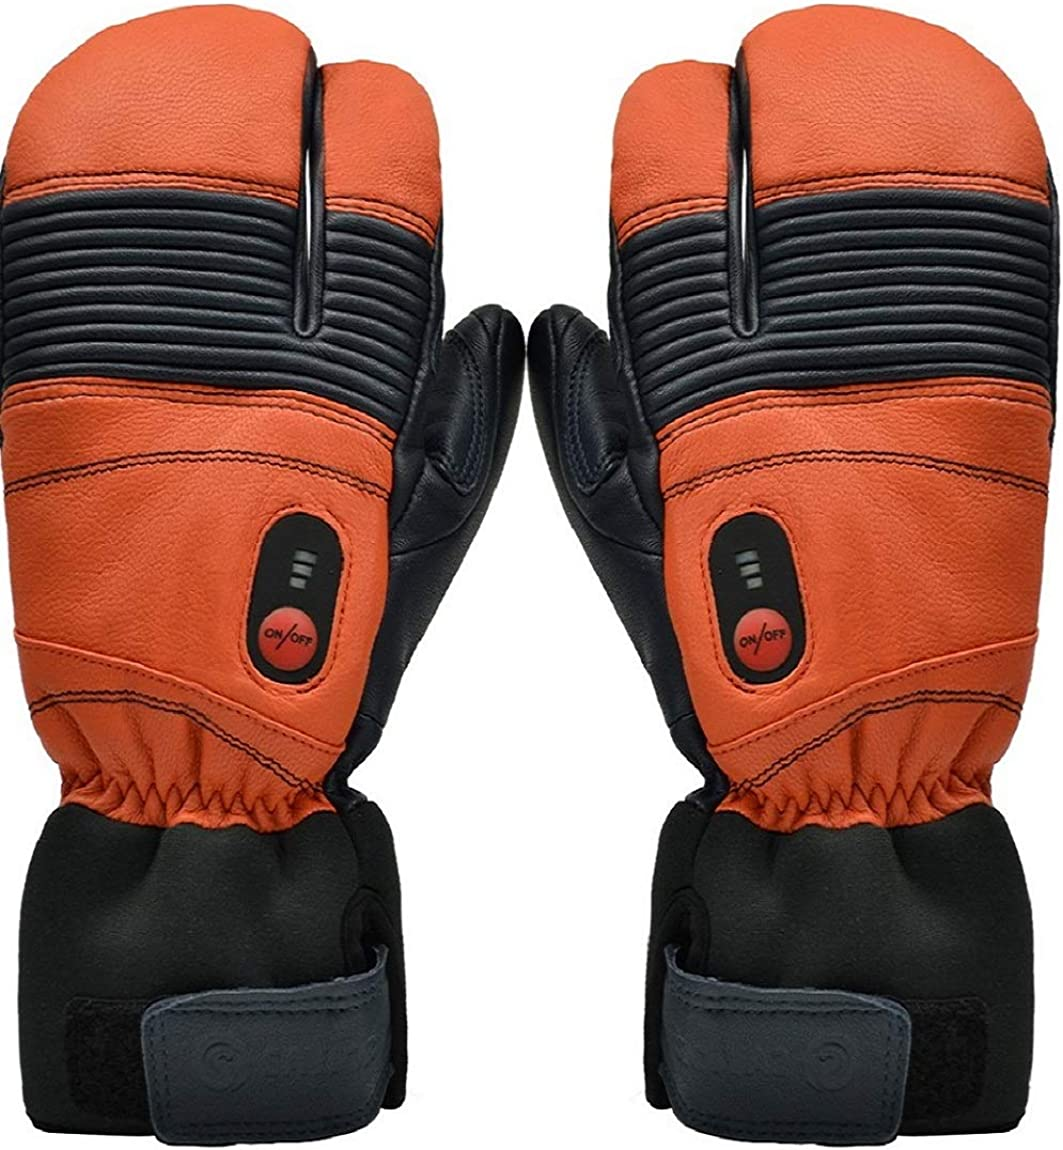 Top 10 Heating Electric Mittens Red Color